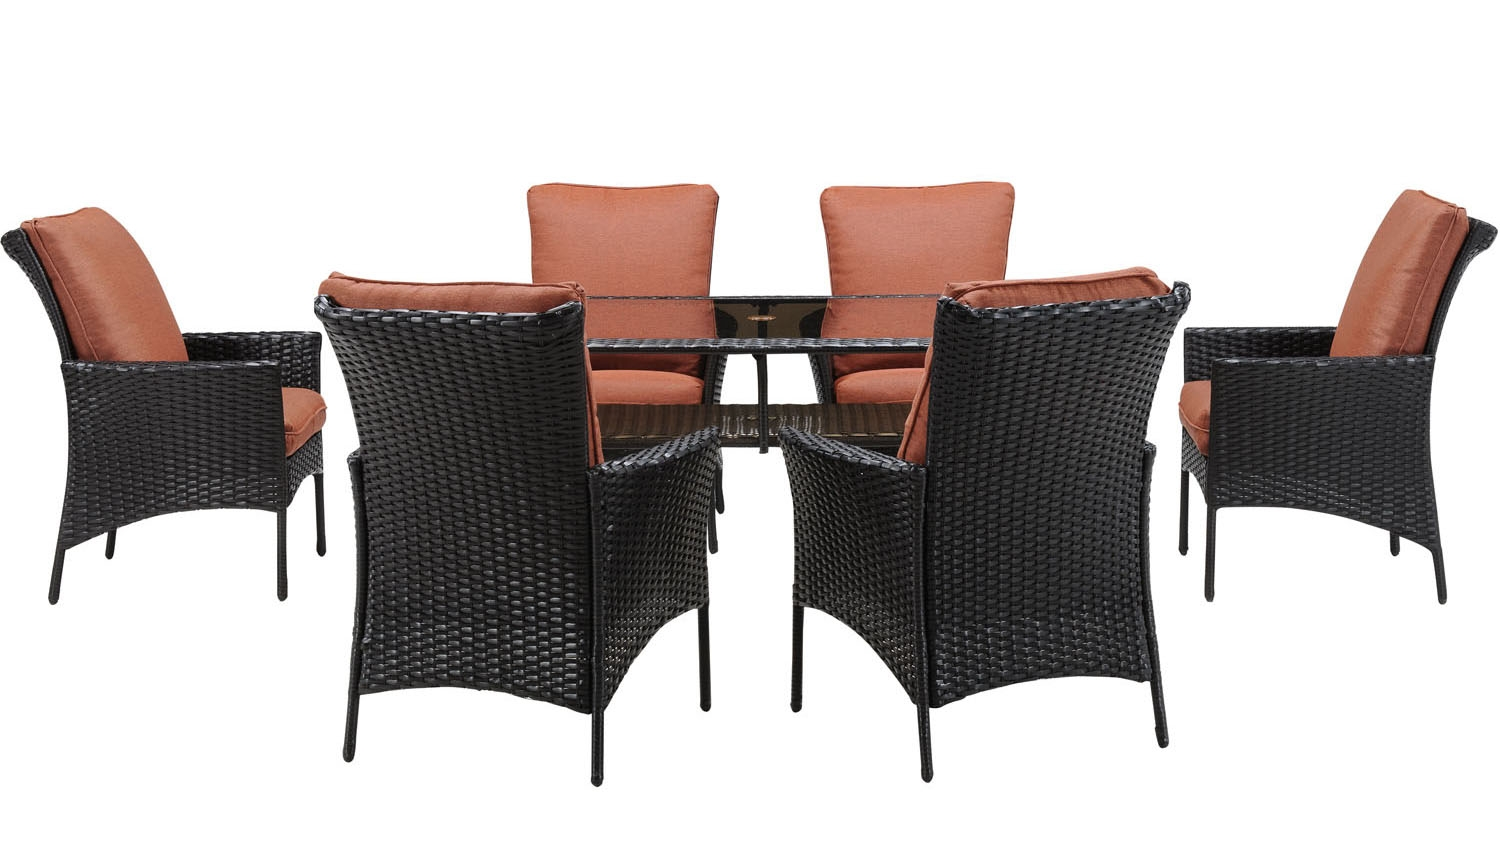 Strathmere Allure 7 Piece Outdoor Dining Patio Set STRALDN7PC RST. Full resolution  image, nominally Width 1500 Height 866 pixels, image with #8F503C.